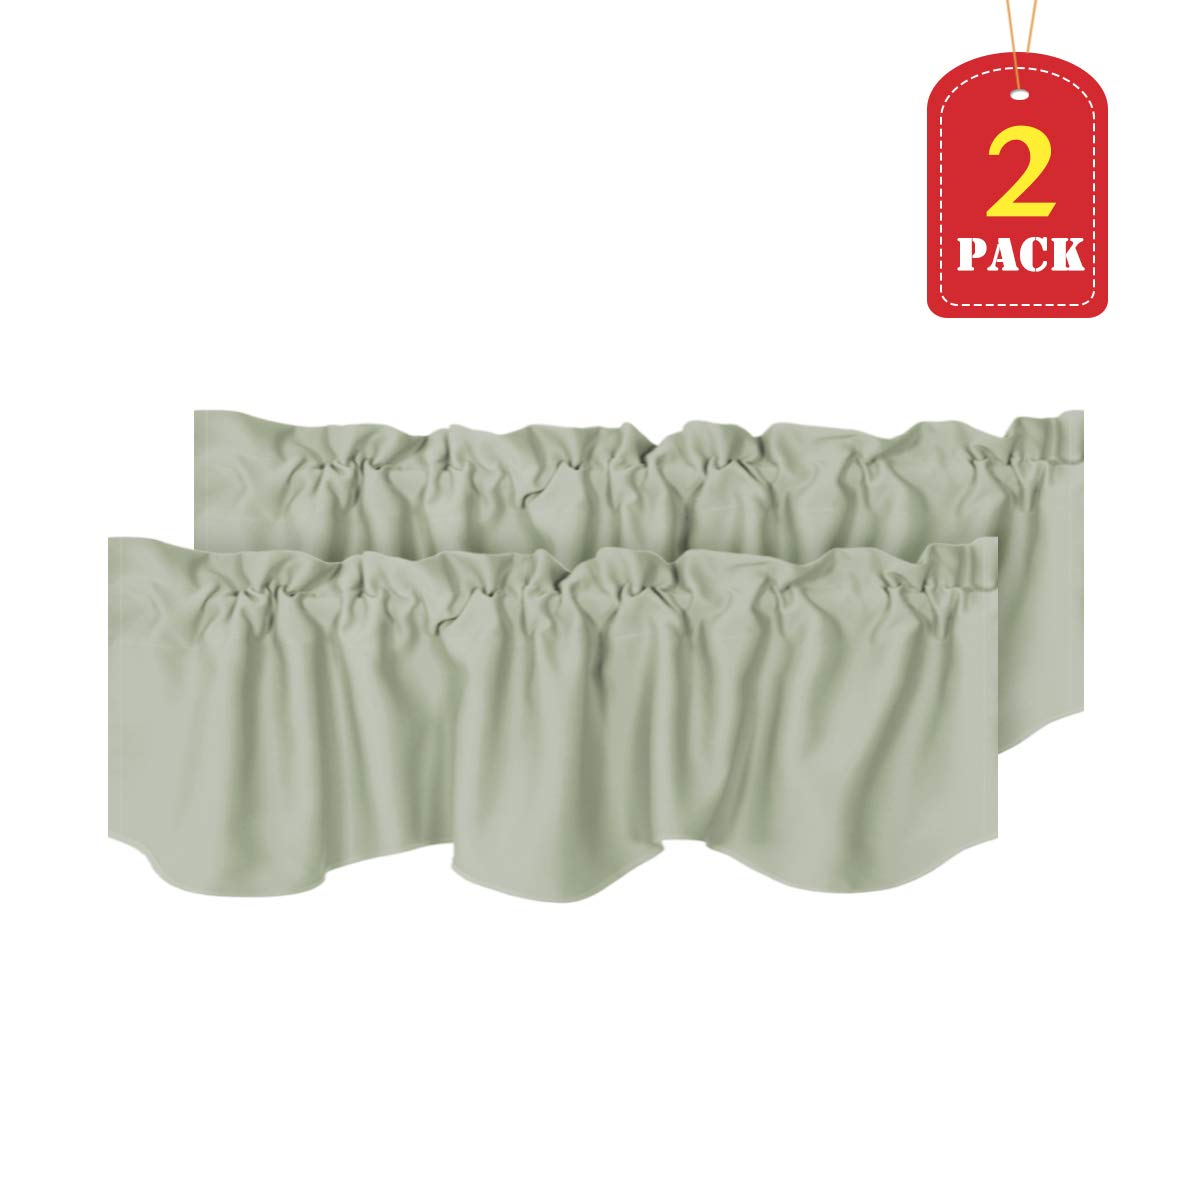 H.VERSAILTEX Window Treatment Curtain Valances Thermal Insulated Valances for Living Room, Rod Pocket, Scalloped, 2 Pack, Sage, 52 x 18 - Inch